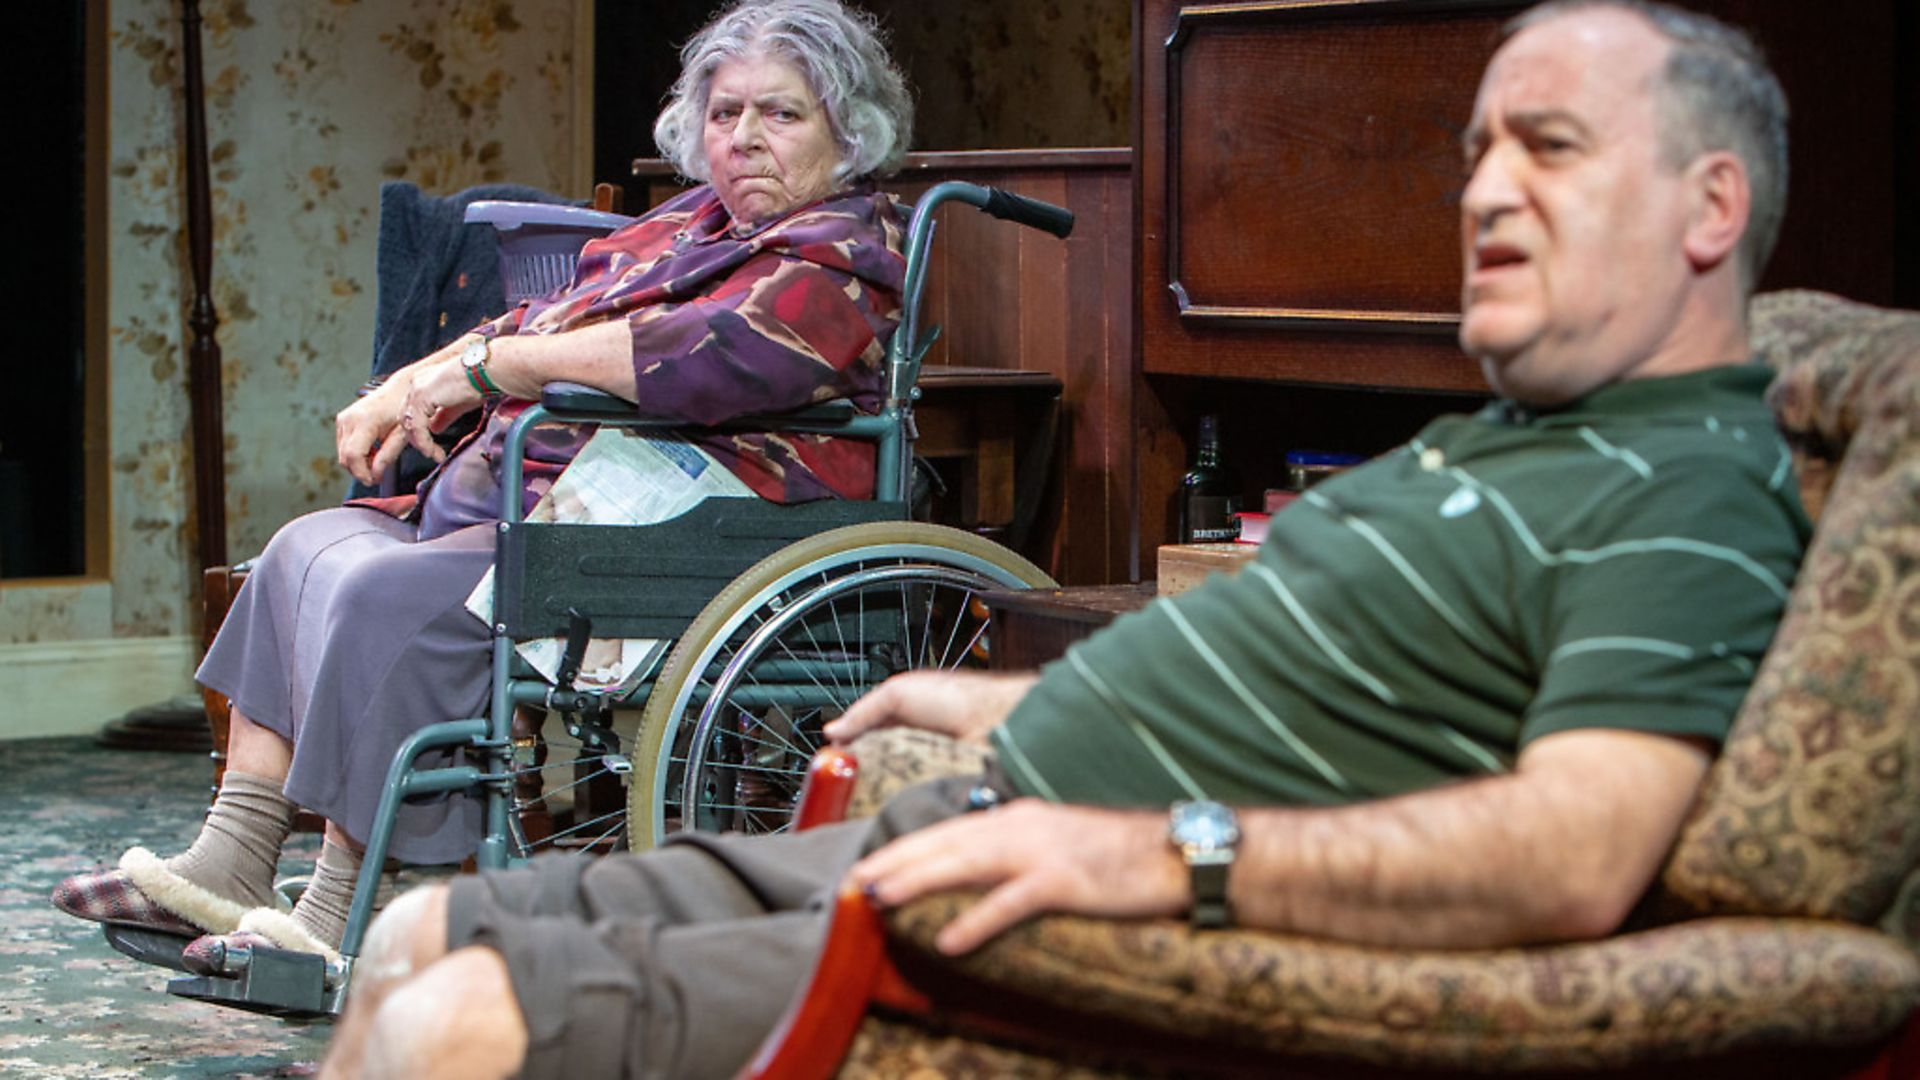 Miriam Margolyes and Mark Hadfield in Sydney & the Old Girl. Photo: Pete Le May - Credit: Archant